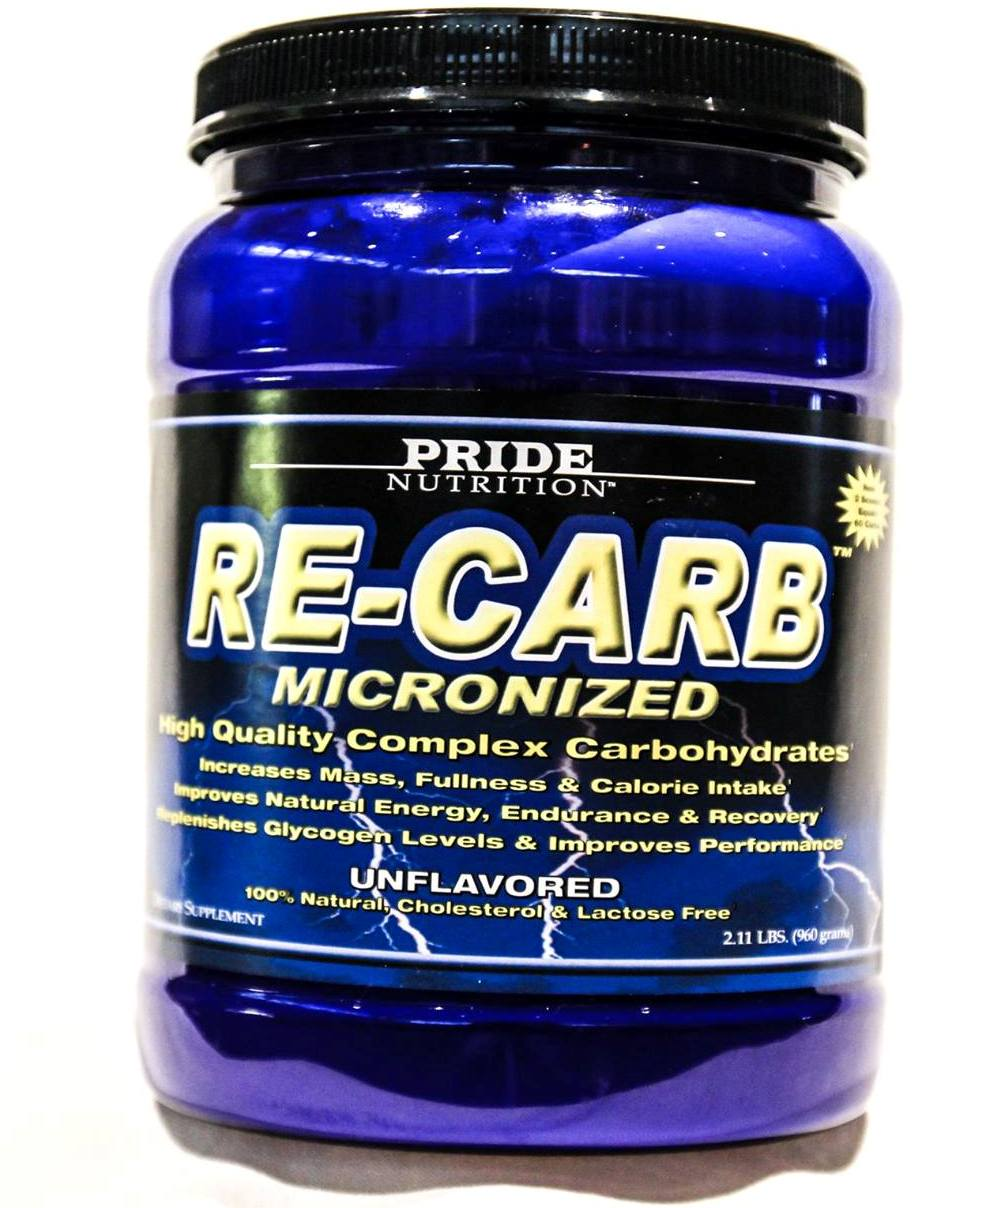 re-carb-resized-1.jpg